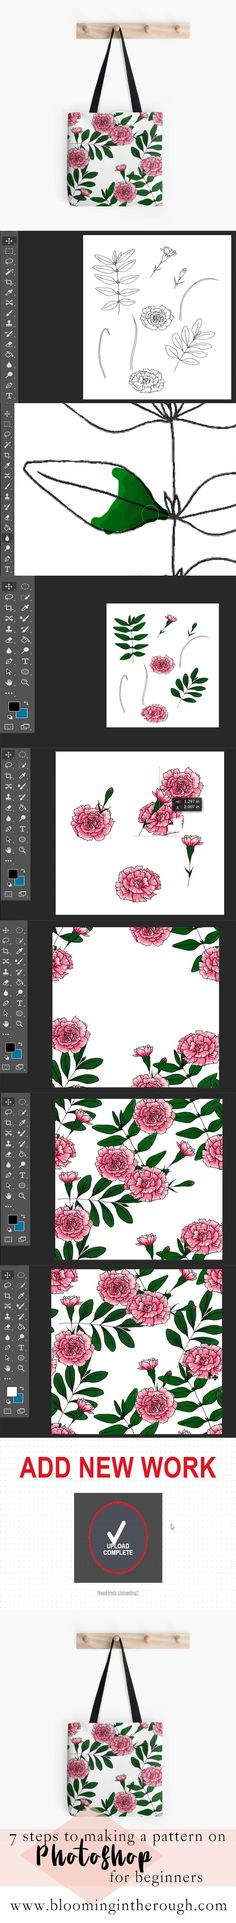 Pattern Design - 7 steps to making a pattern on Photoshop for beginners. Photoshop Lessons, Sell Stuff, Internet Art, Wallpaper Patterns, Graphic Design Tips, Basic Tools, Illustrator Tutorials, Fabric Manipulation, Hand Illustration